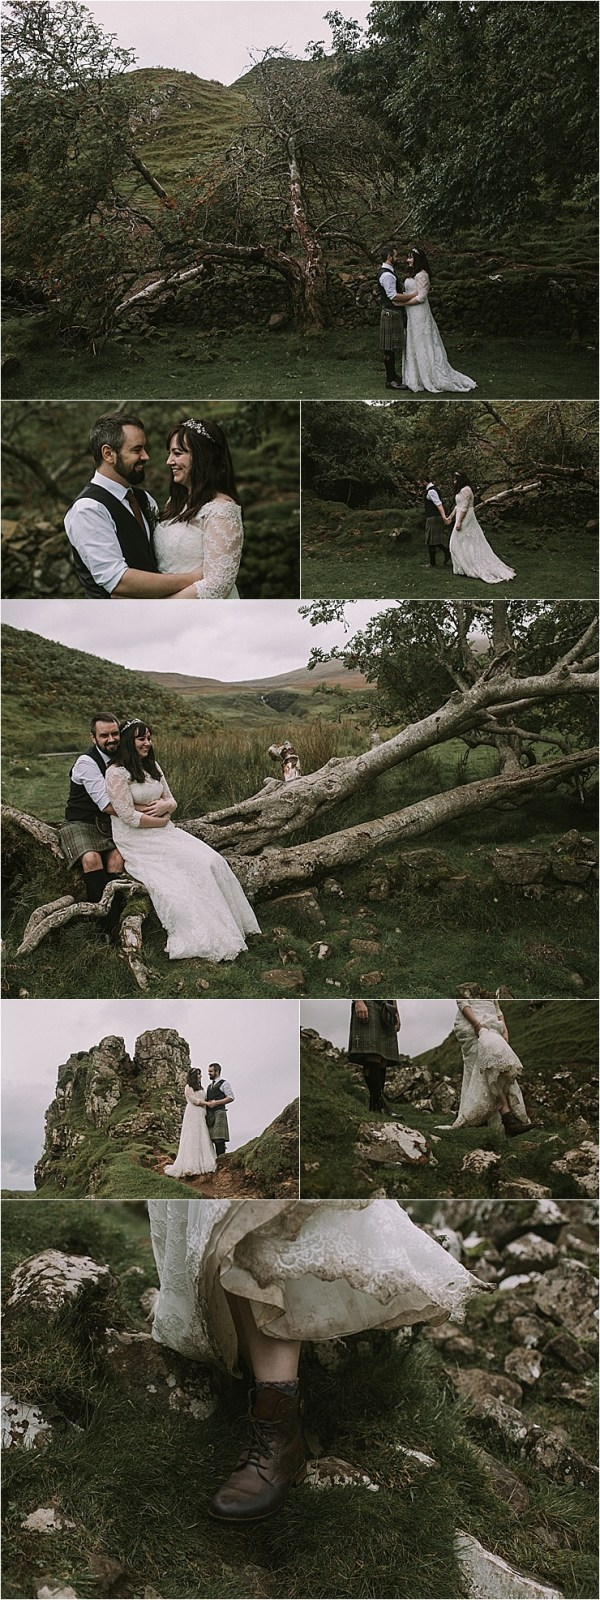 Wedding portraits in an ancient forest on the Isle of Skye by Maureen Du Preez